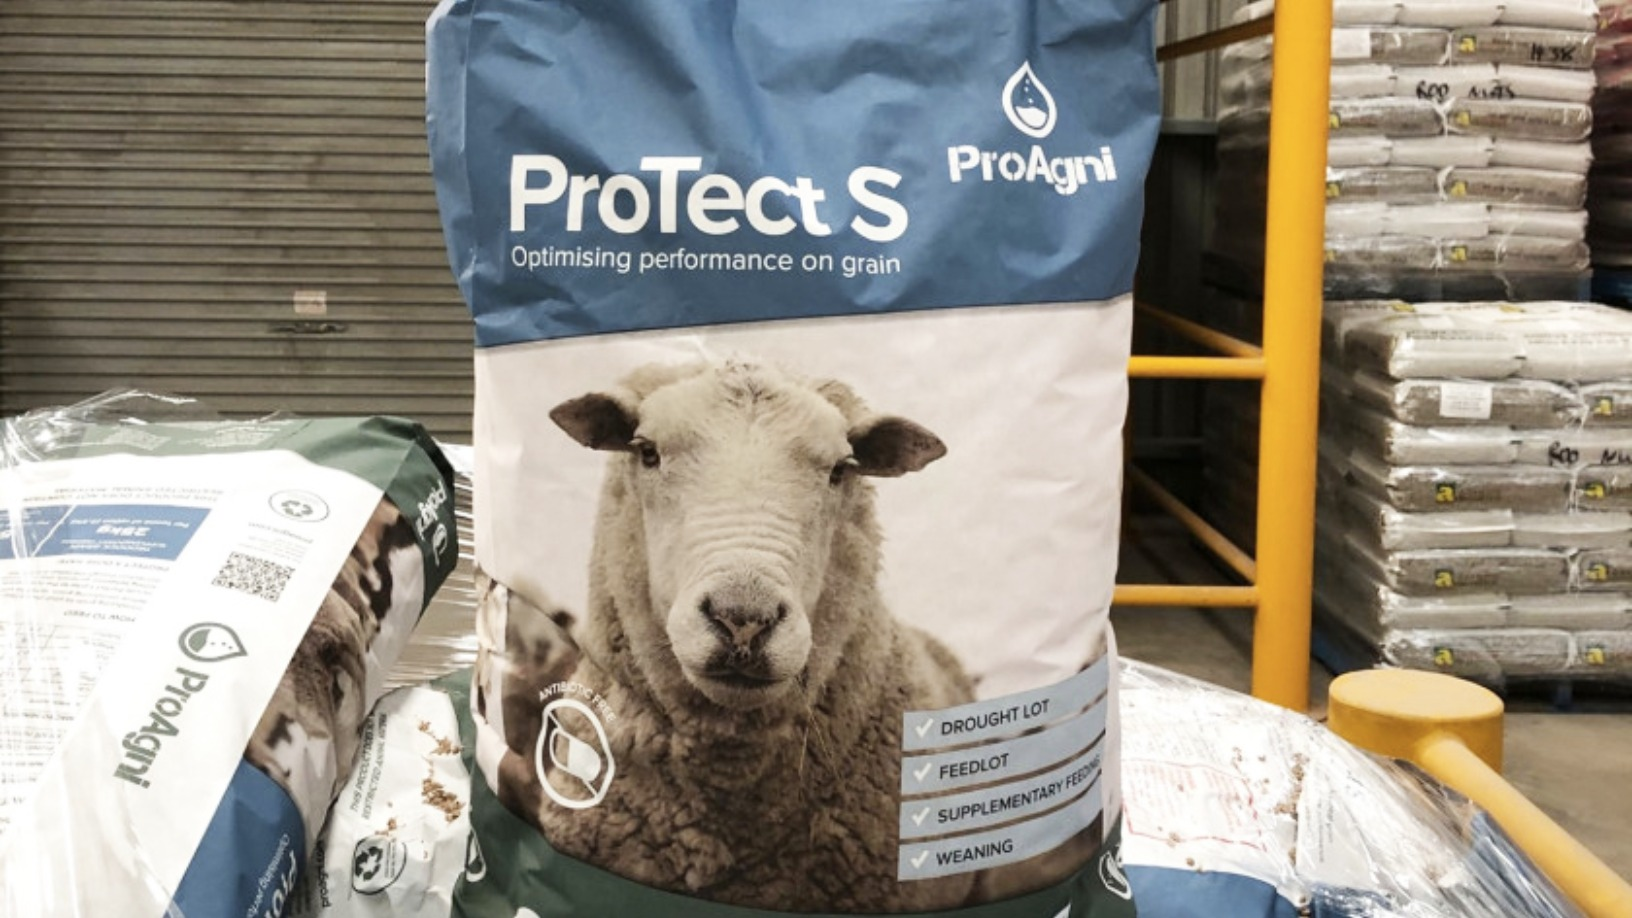 Inspired by kangaroos, ProAgni wants to wean the livestock farming industry off antibiotics